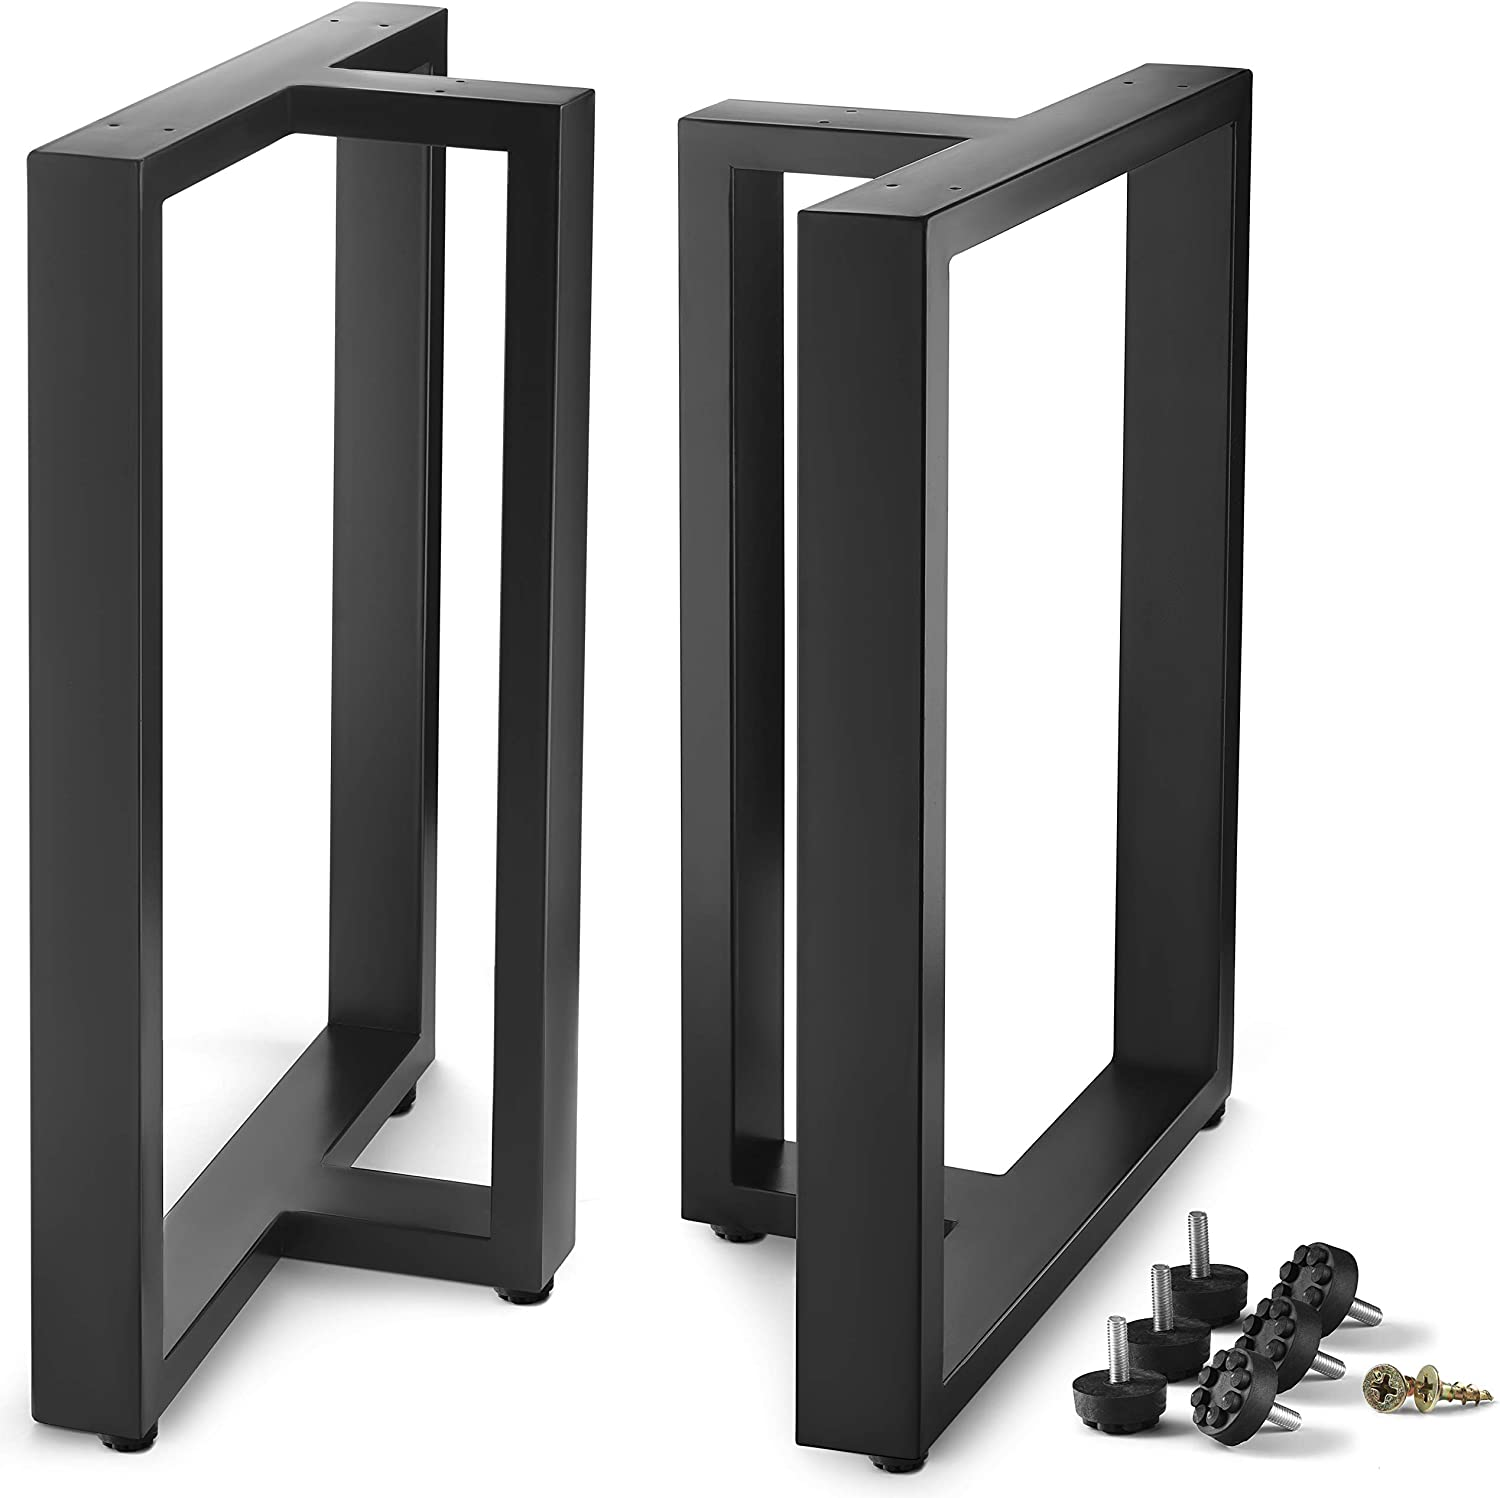 """CRIZTA Metal Table Legs 28 inch Height 17.7"""" Wide, Set of 2, Rustic Heavy Duty Leg for Dining Furniture, Wood Coffee Bench Tables and Desk - Black Powder Coated (Black)"""